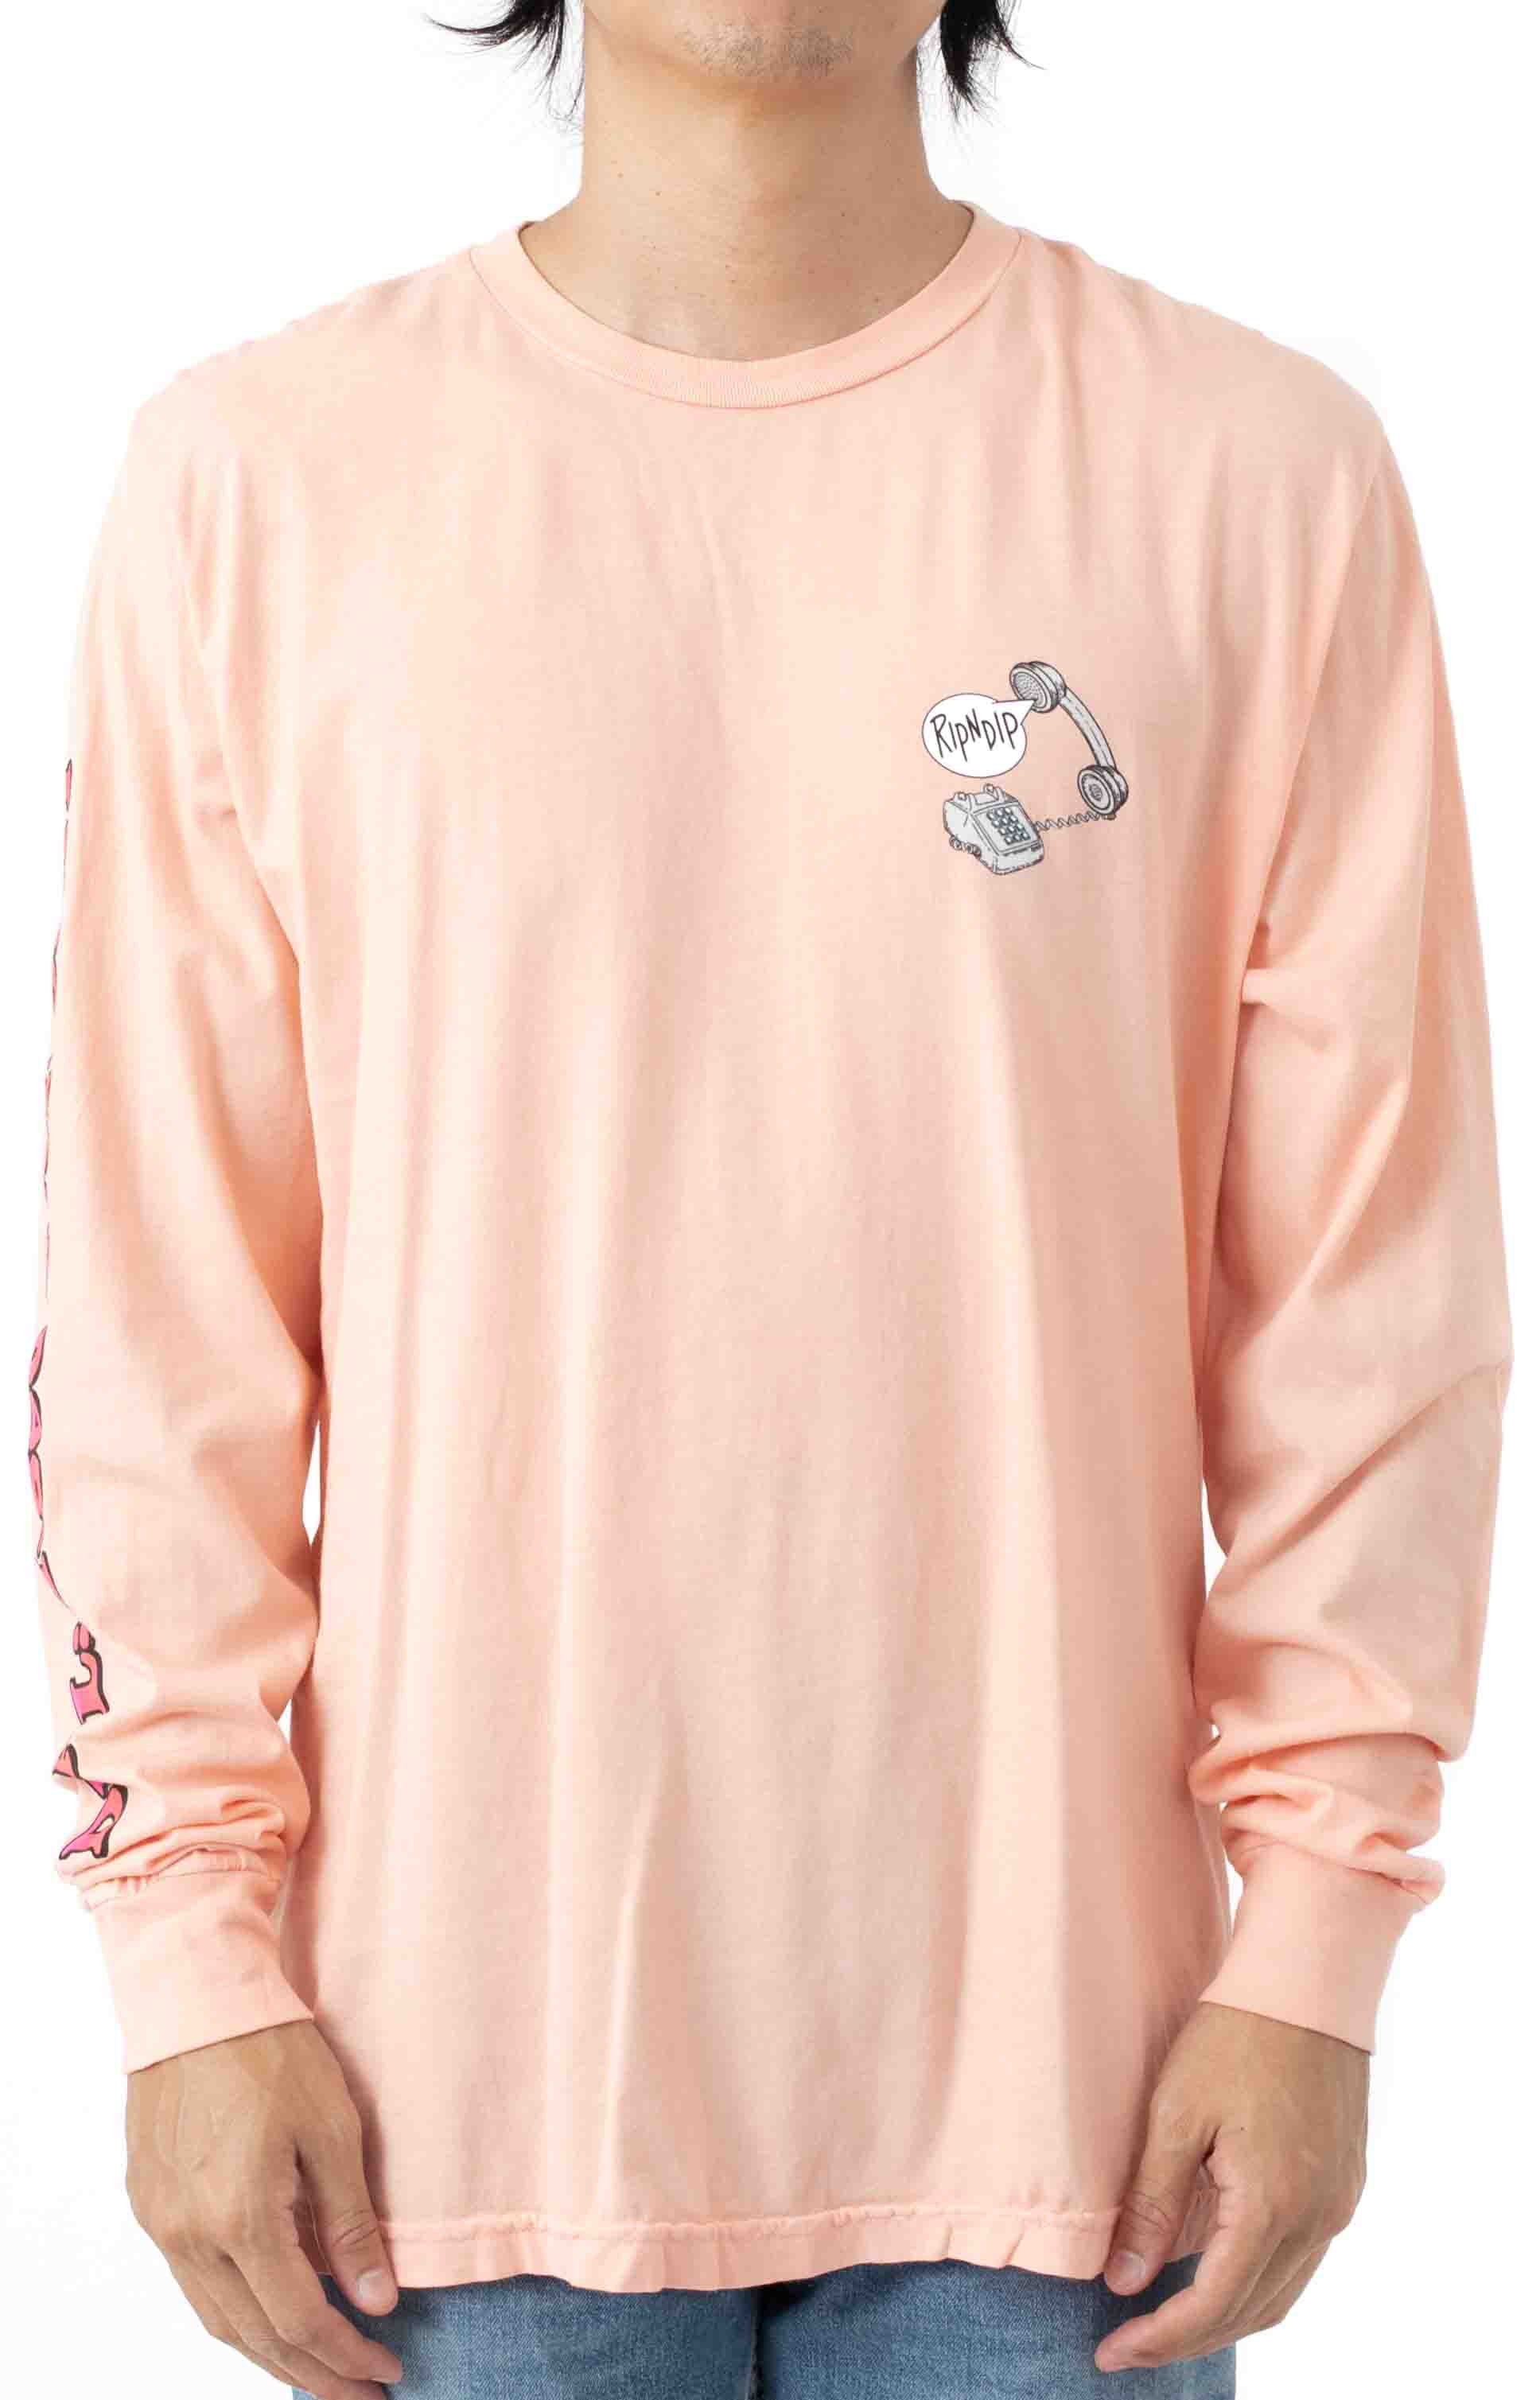 Hows My Attitude L/S Shirt - Dusty Rose  2